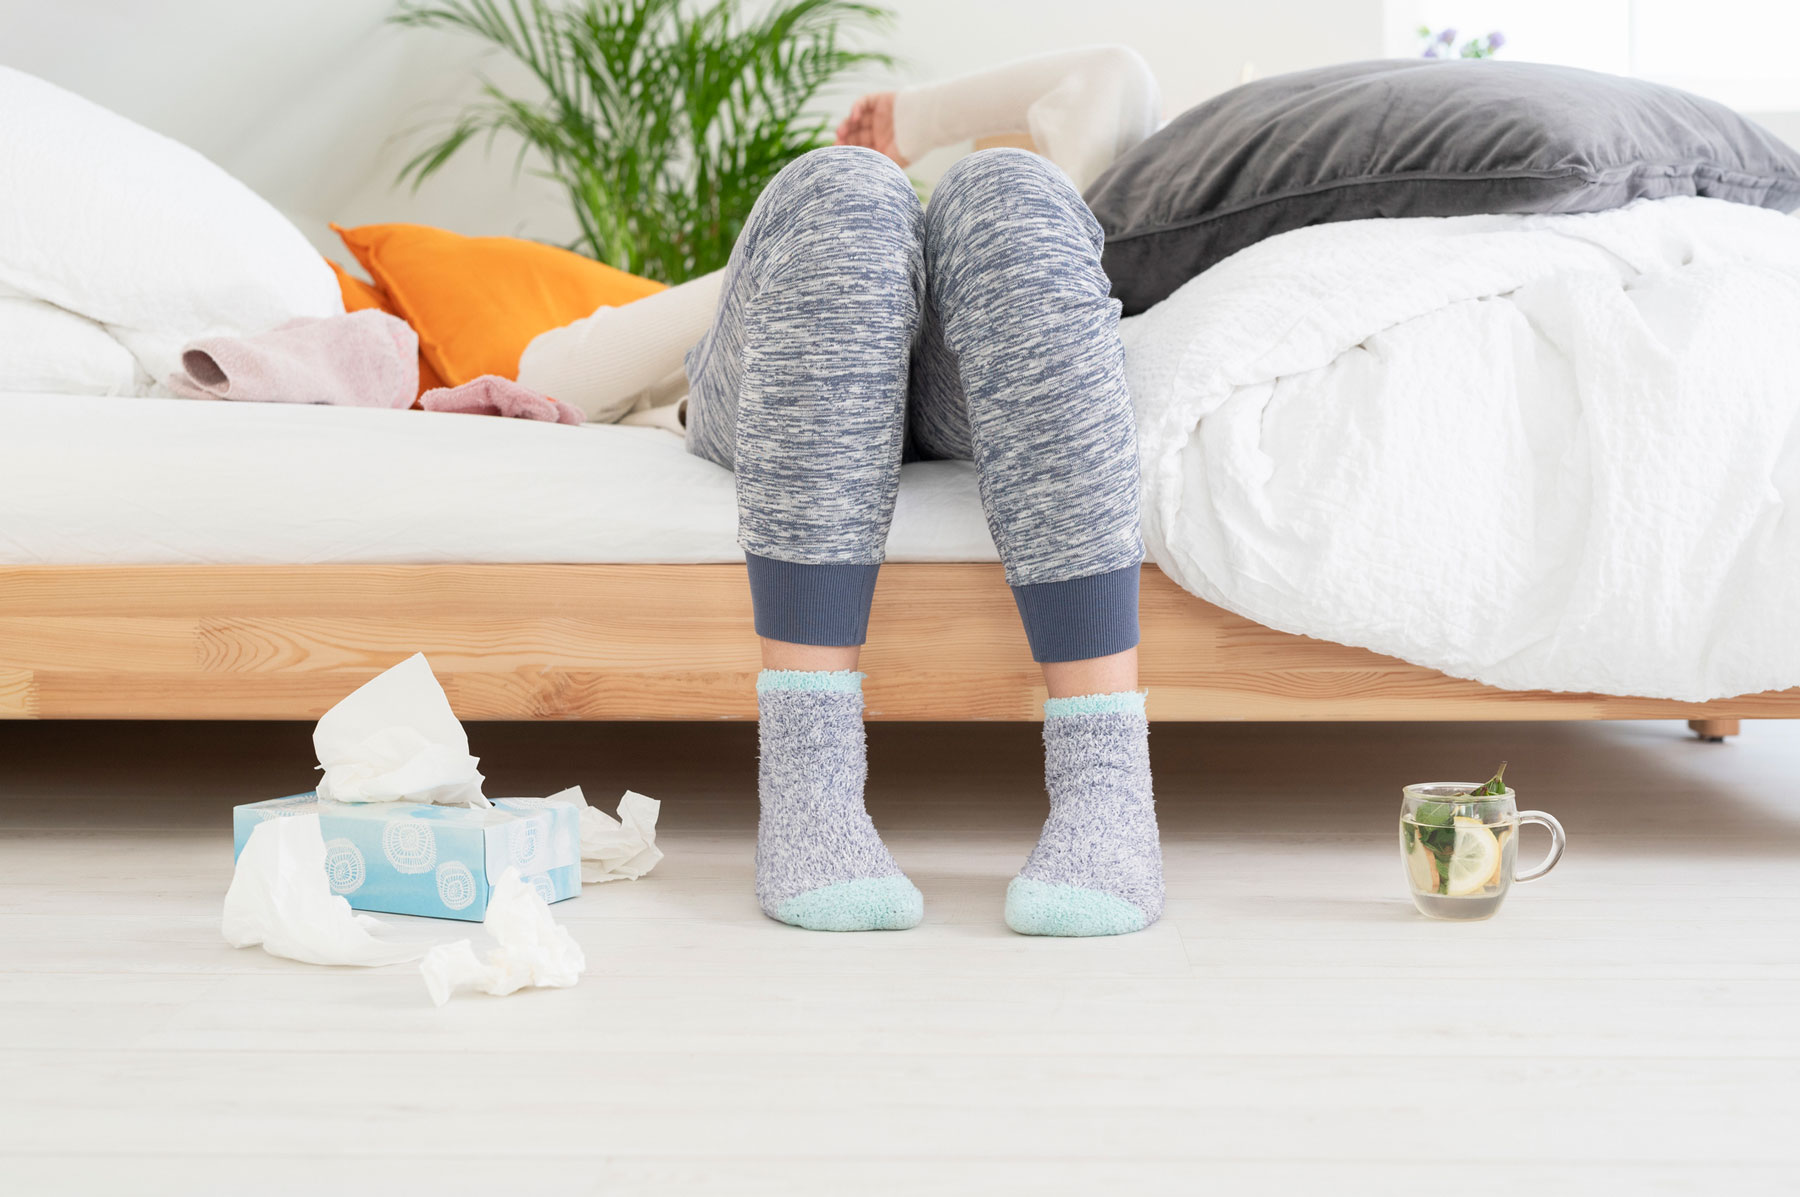 Cold and Flu Prevention Surprising Tips - Sick woman with tissues